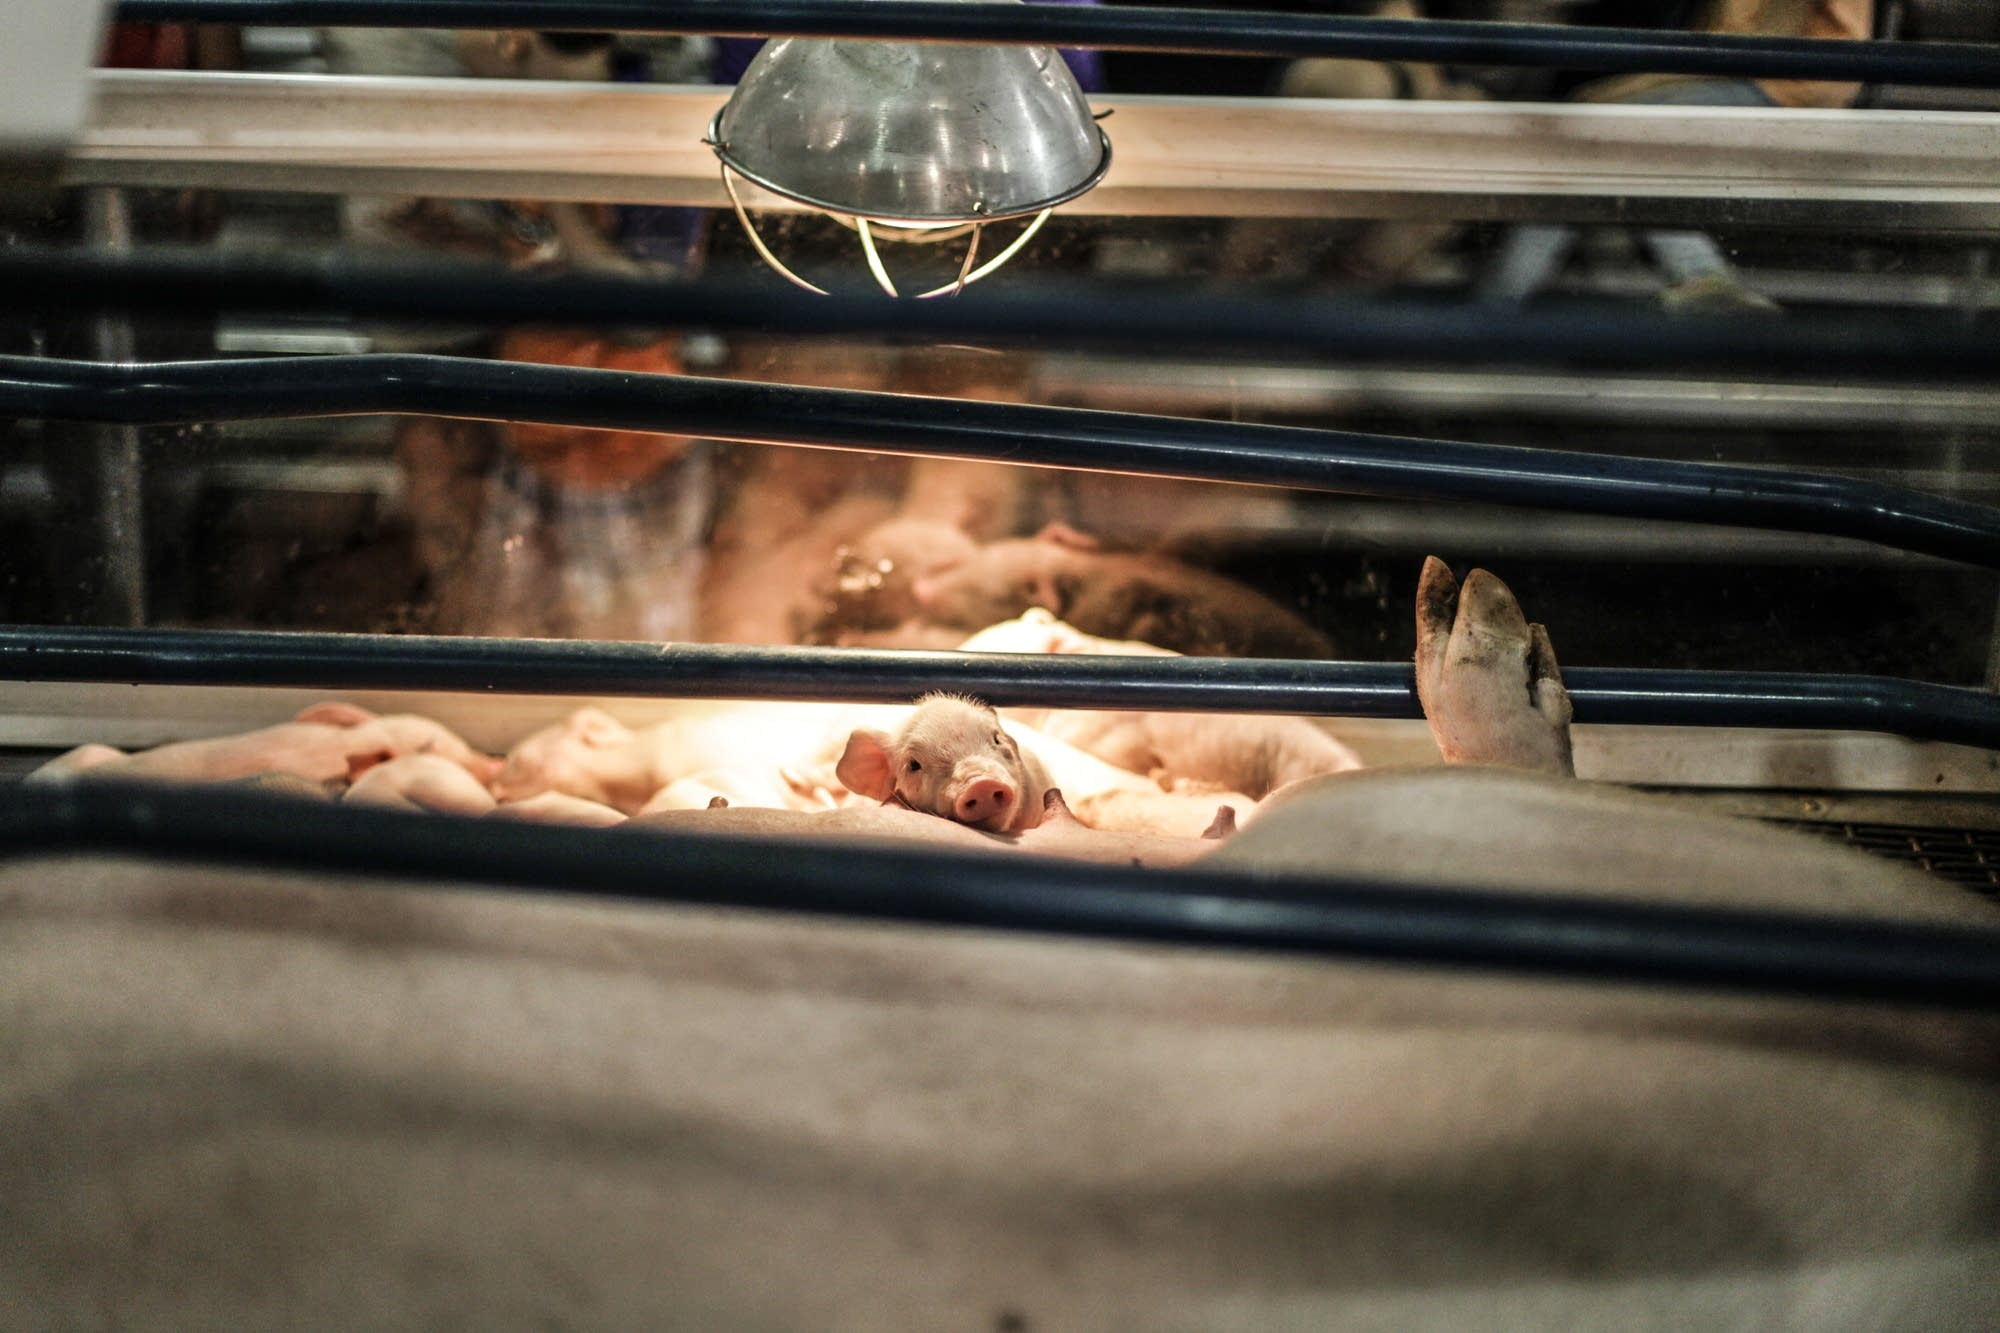 Piglets rest near their mother under a heat lamp.